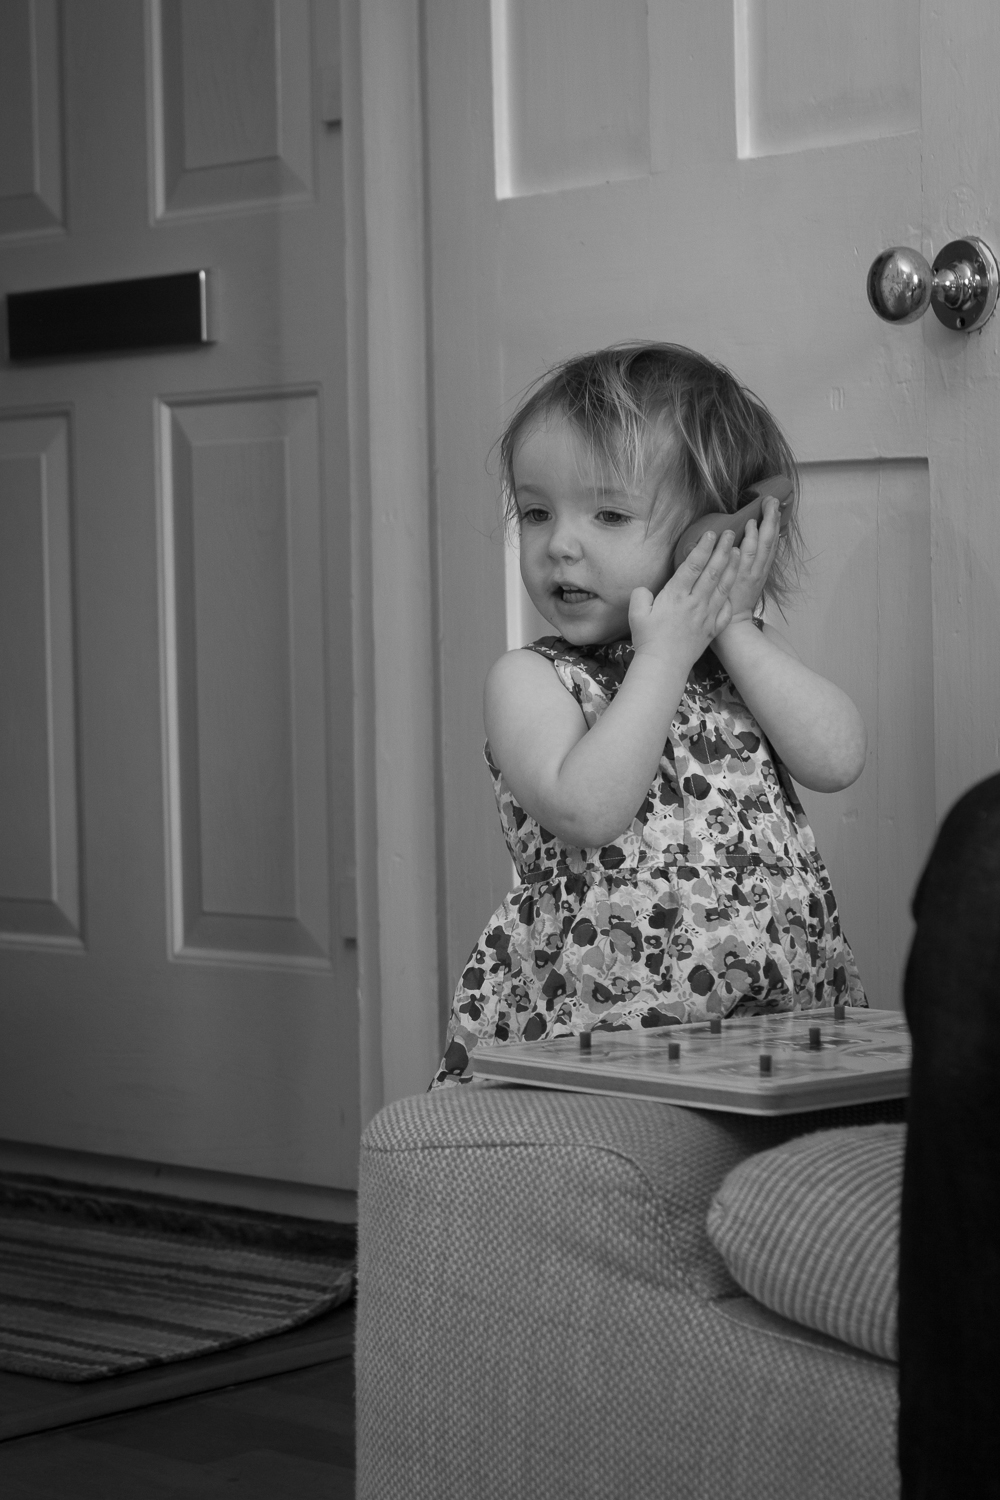 A fine art black and white image of a little girl using a toy phone - she looks with intent as if somepone is really on the other end talking to her